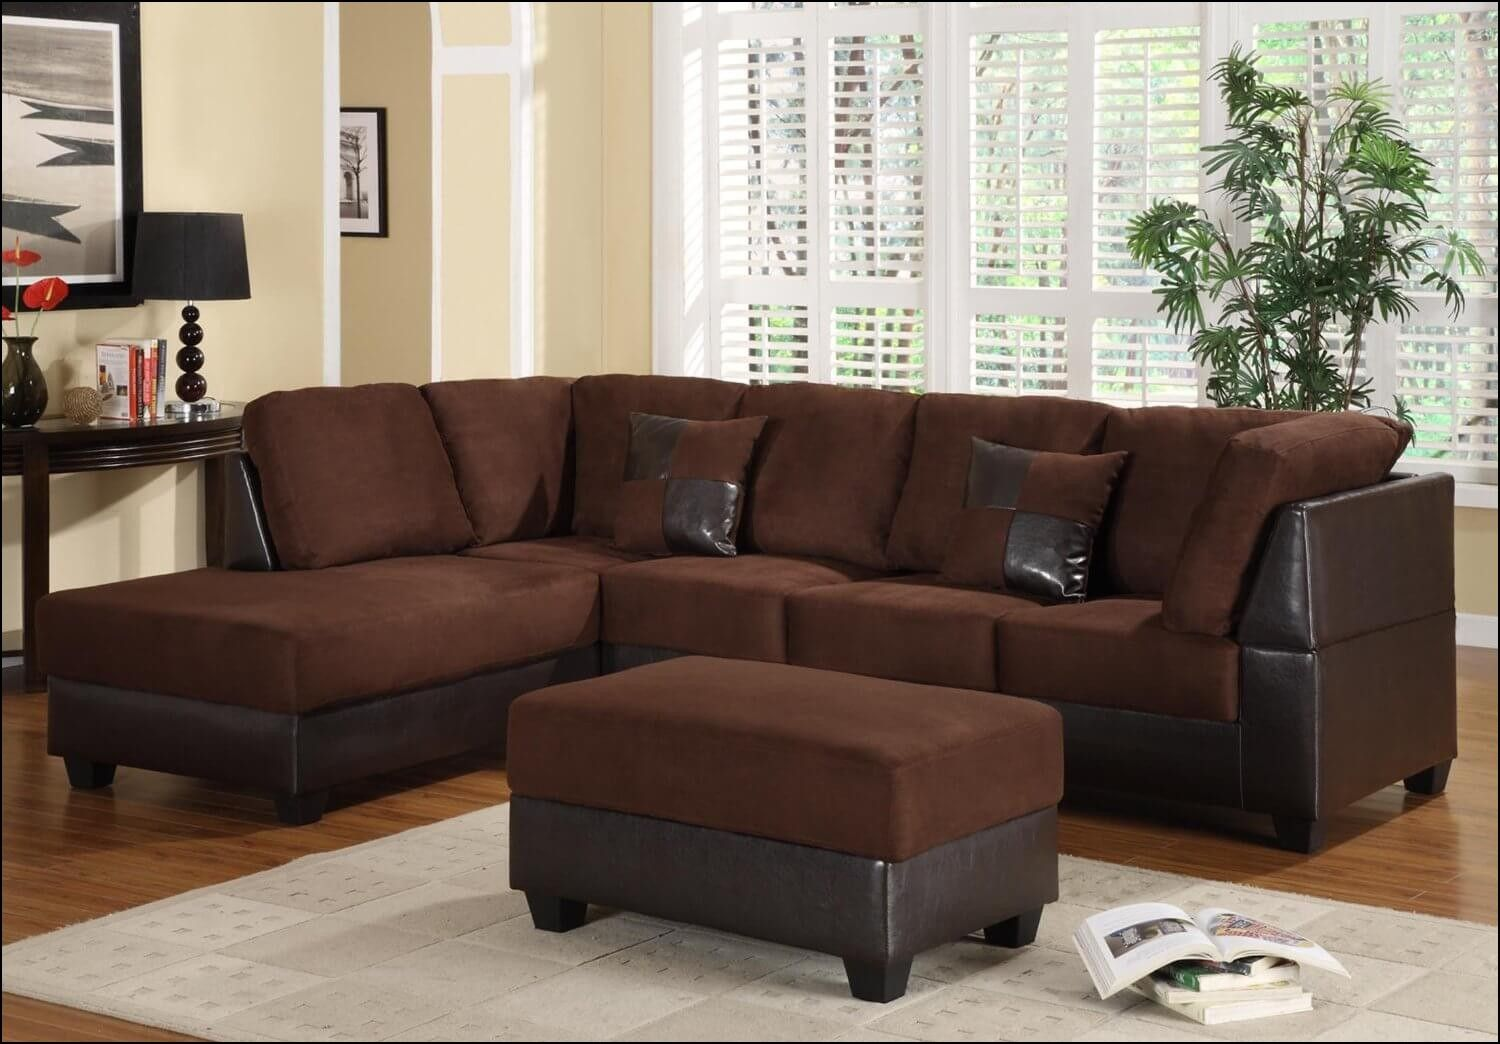 Exceptional Cheap Sectional Sofas Under 200